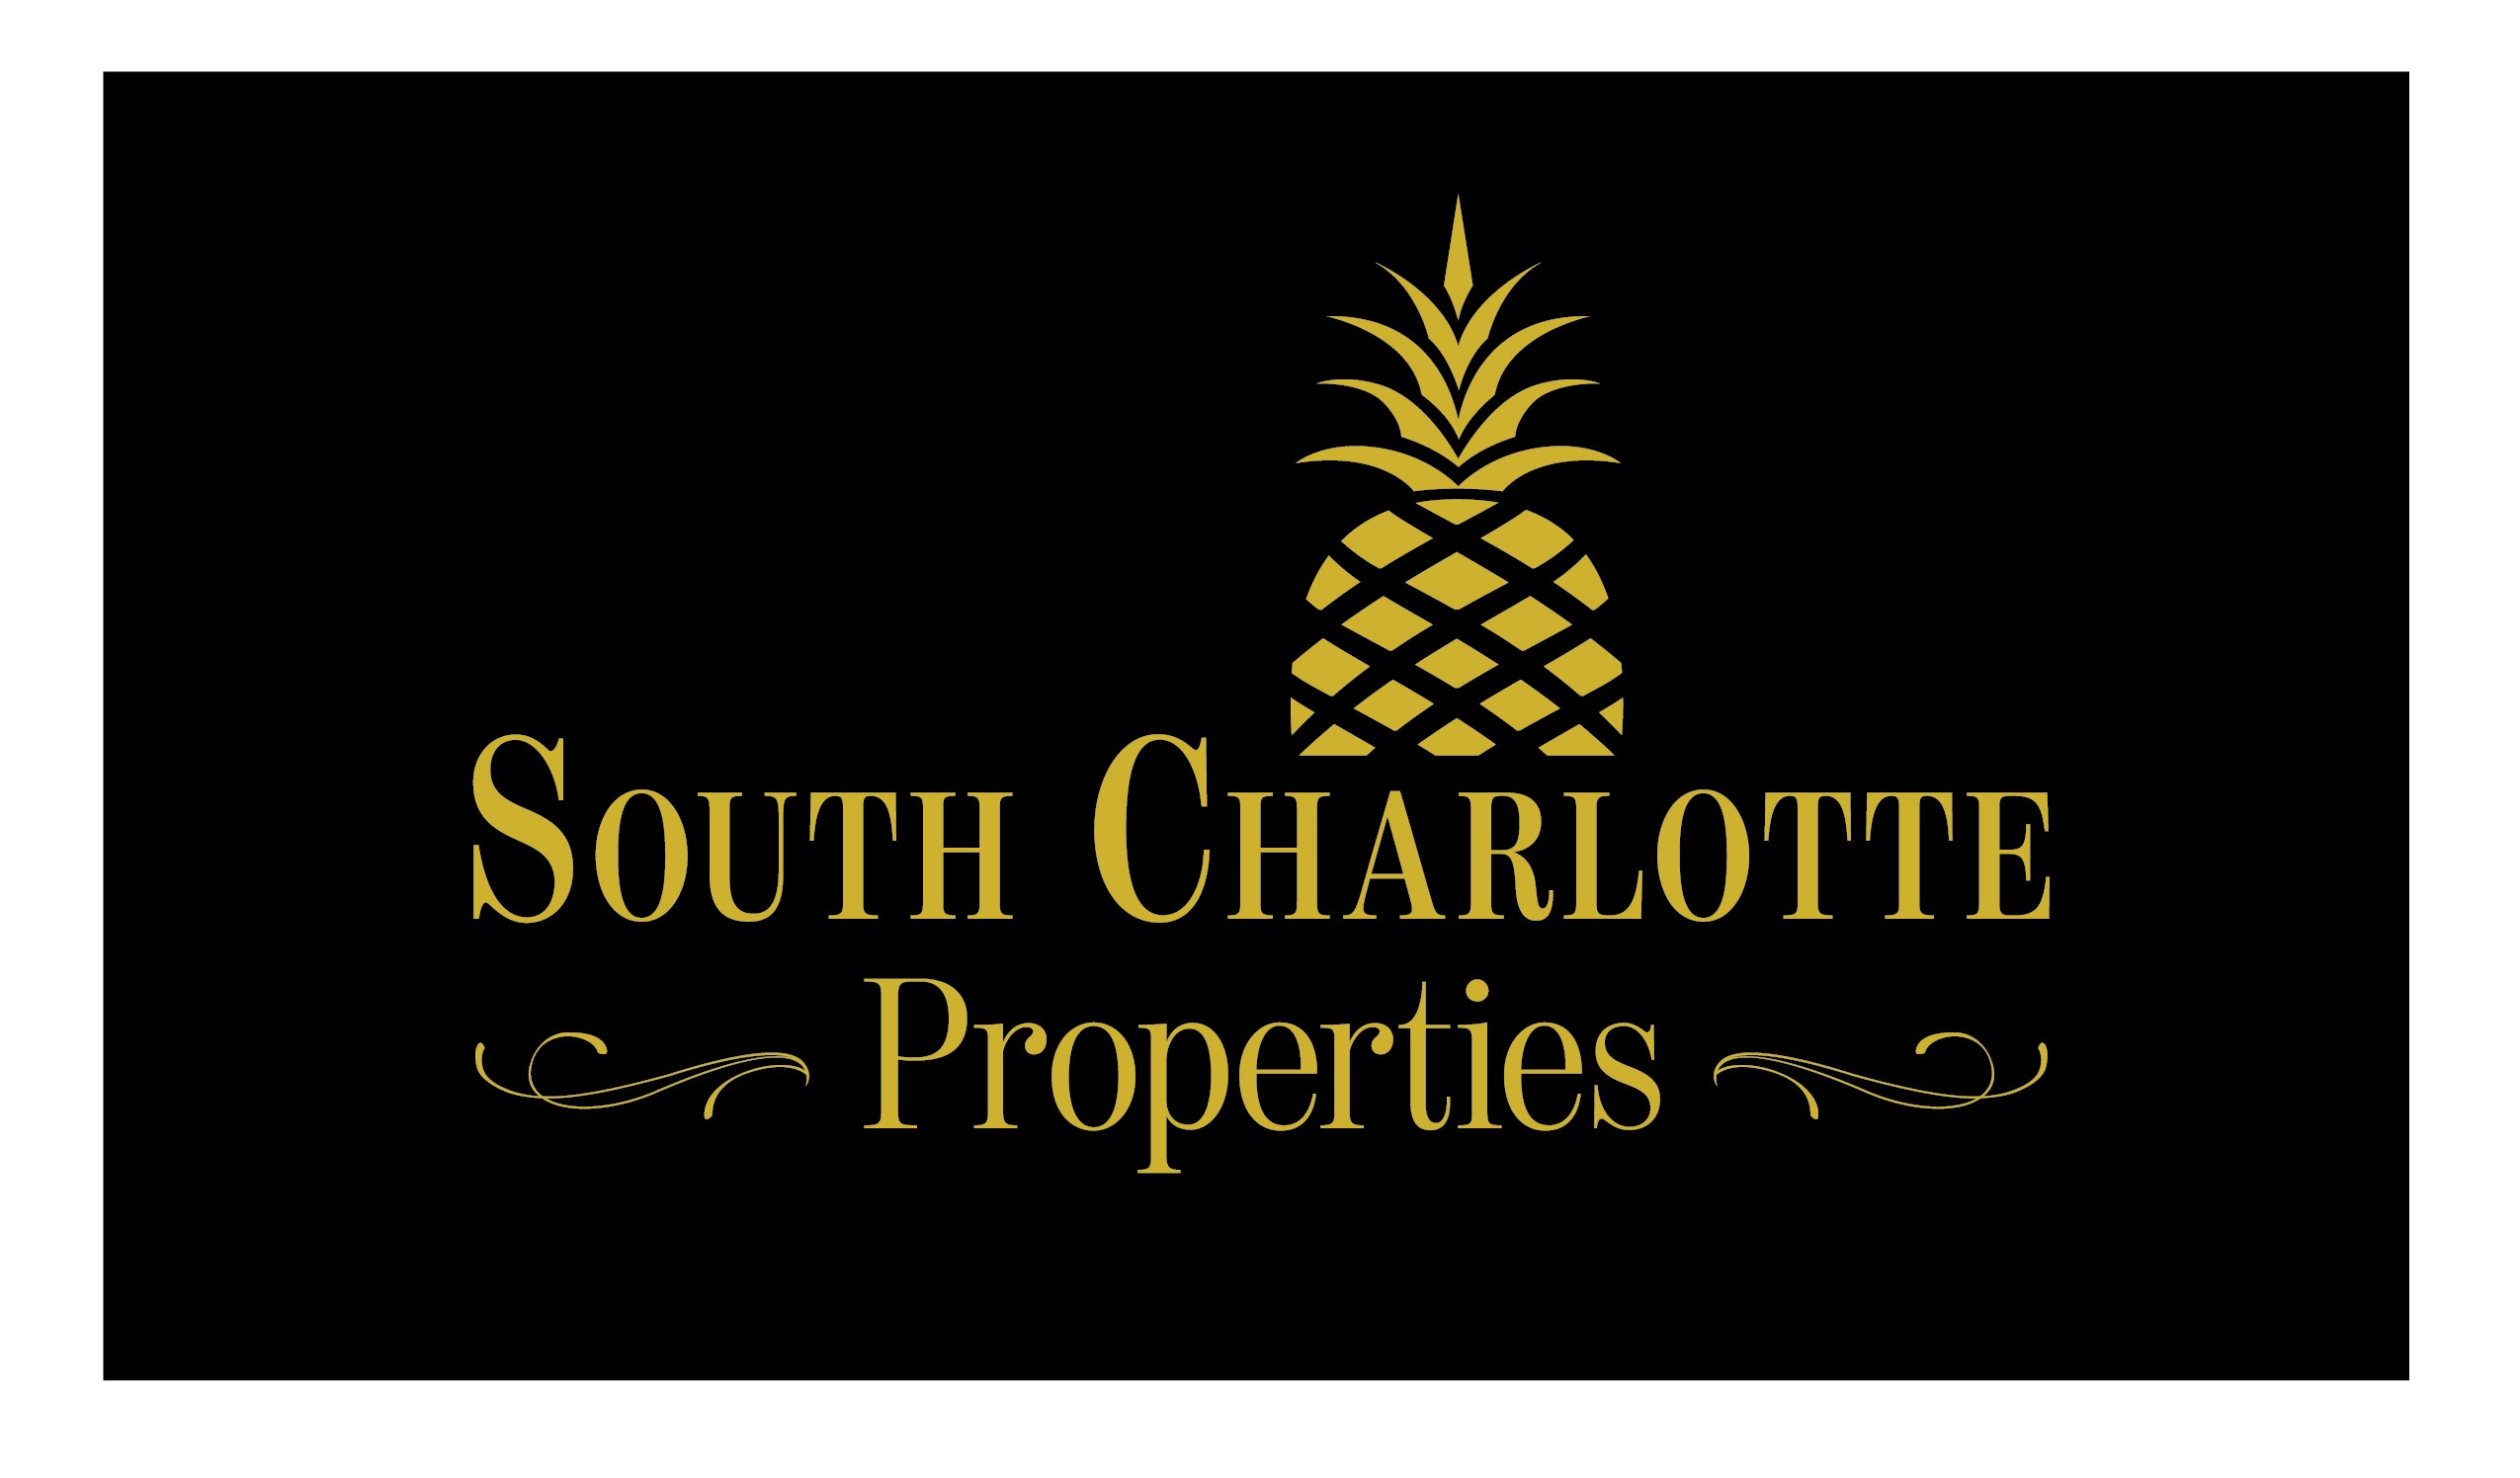 South Charlotte Properties